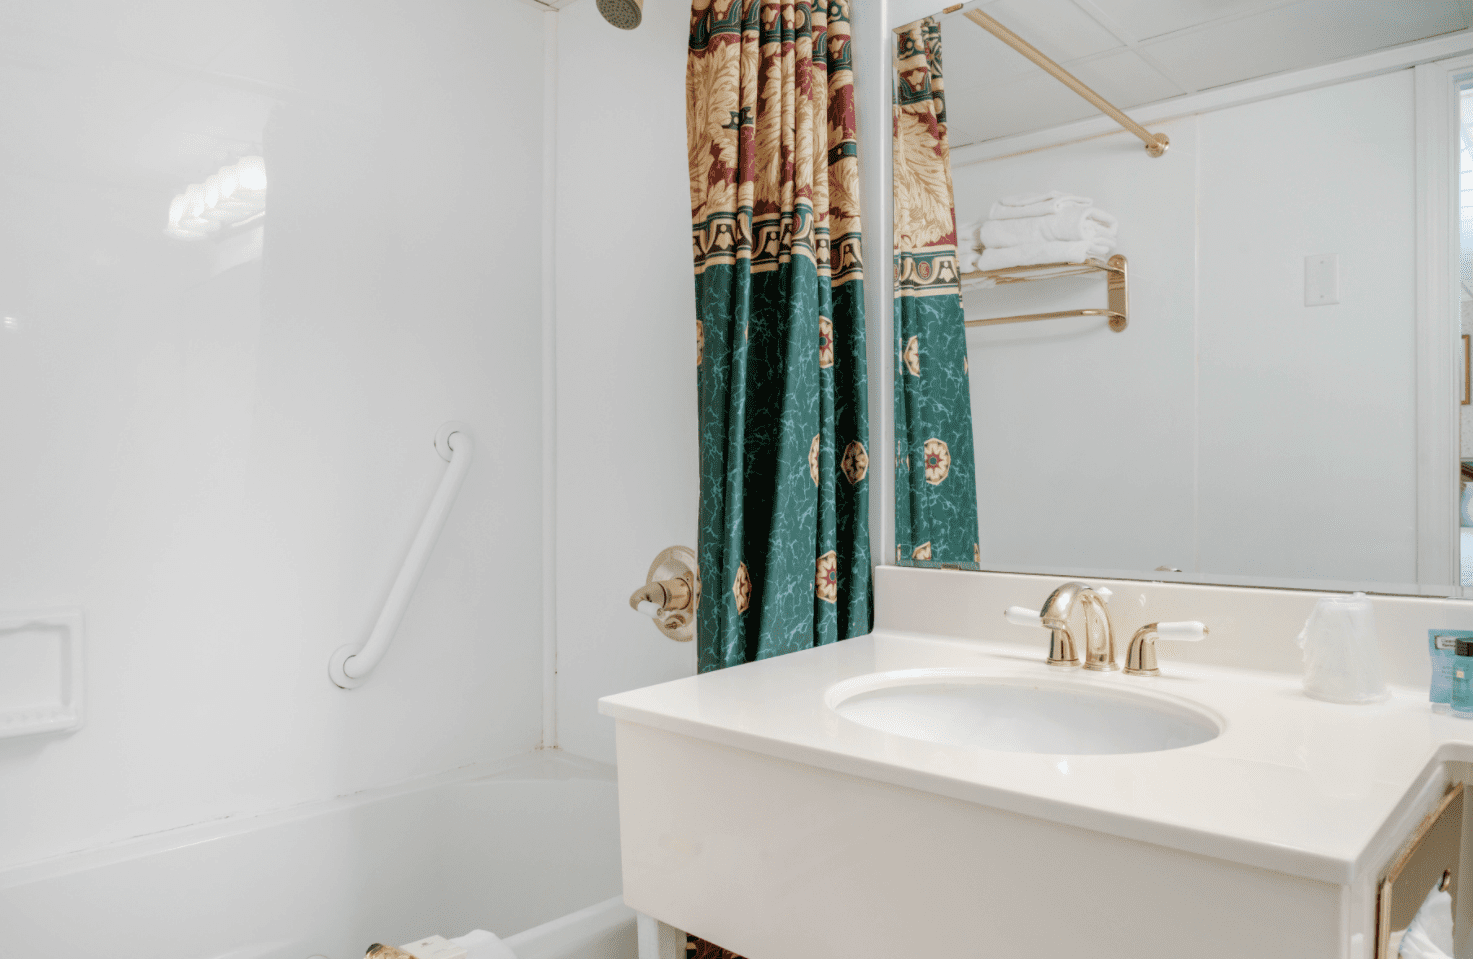 Bathrooms with Railings in Showers